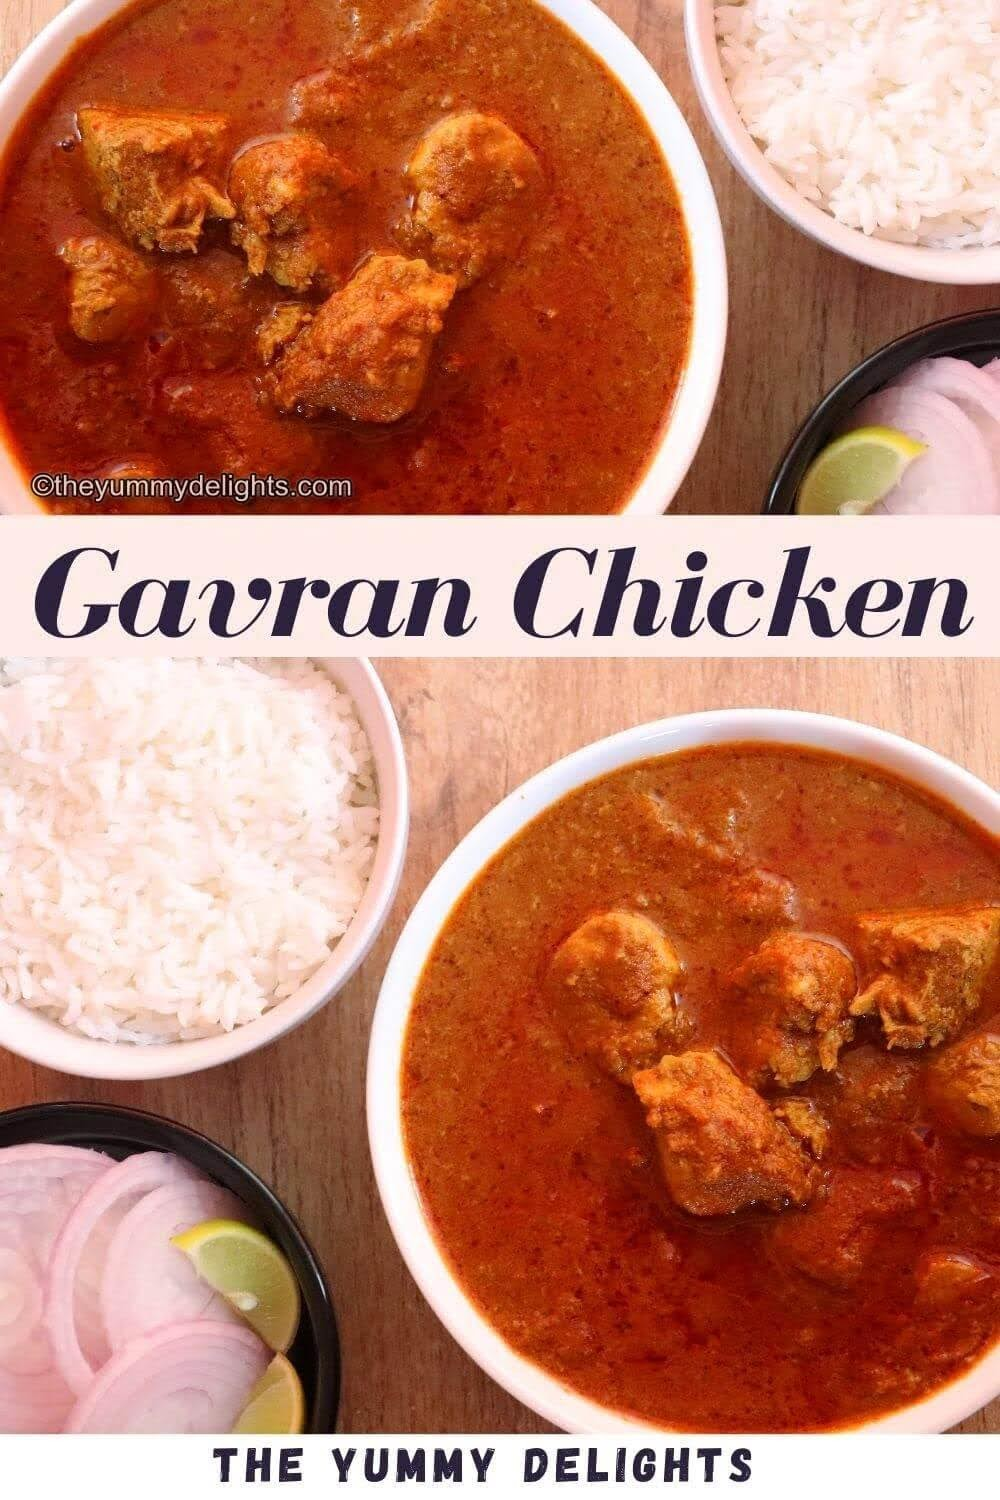 gavran chicken curry served in a white bowl. It is served with a bowl of steamed rice and onion slices, and lemon wedge.